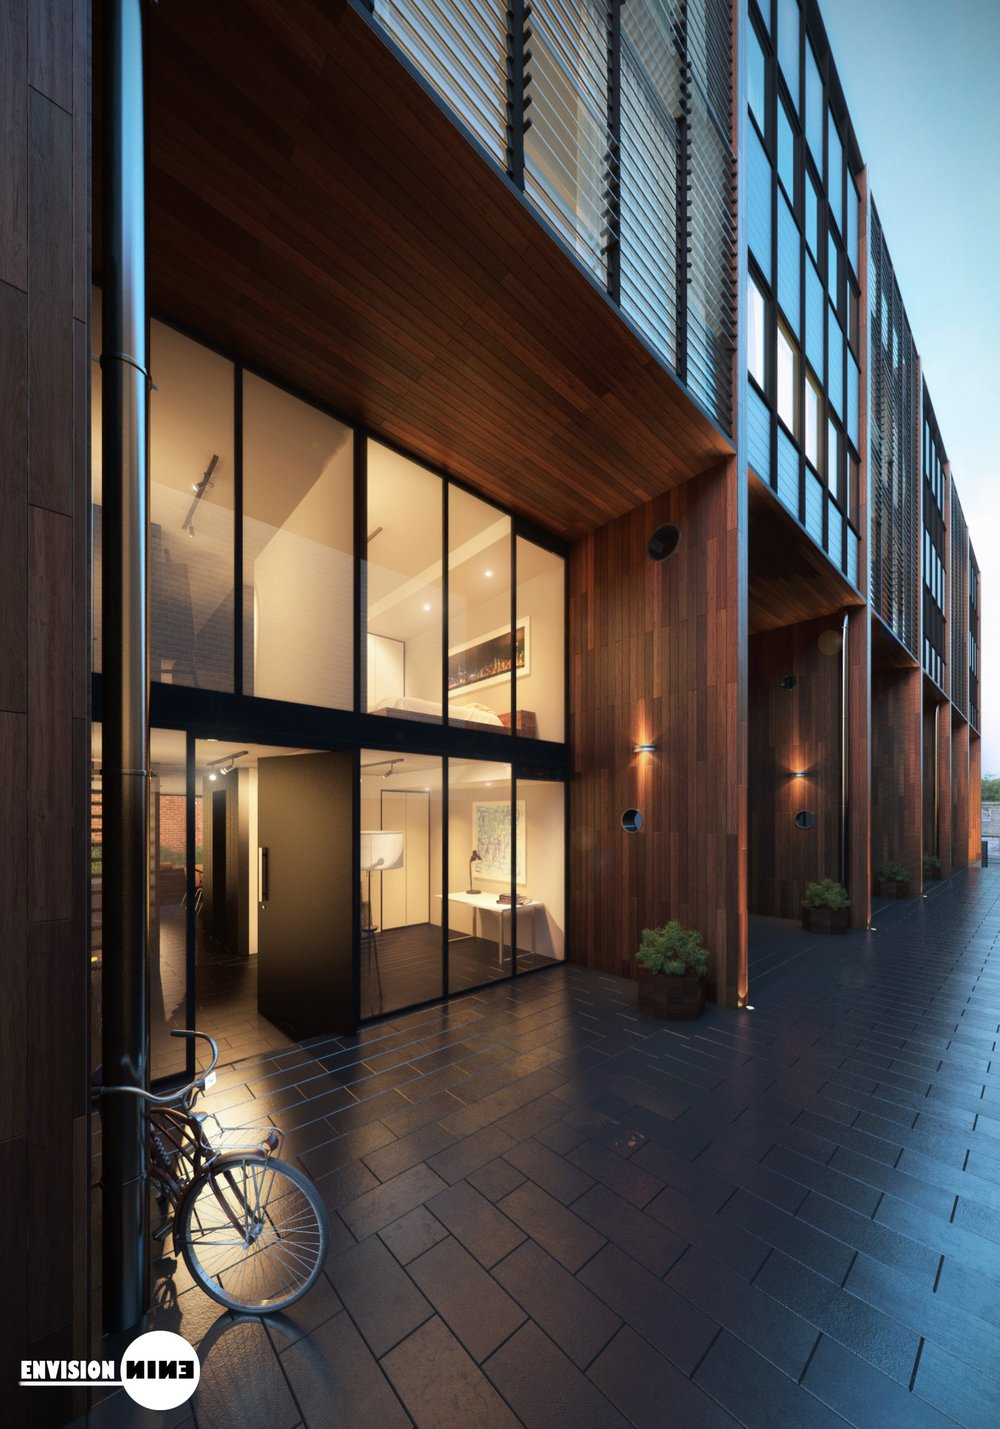 20. Hue Apartment By Envision Nine